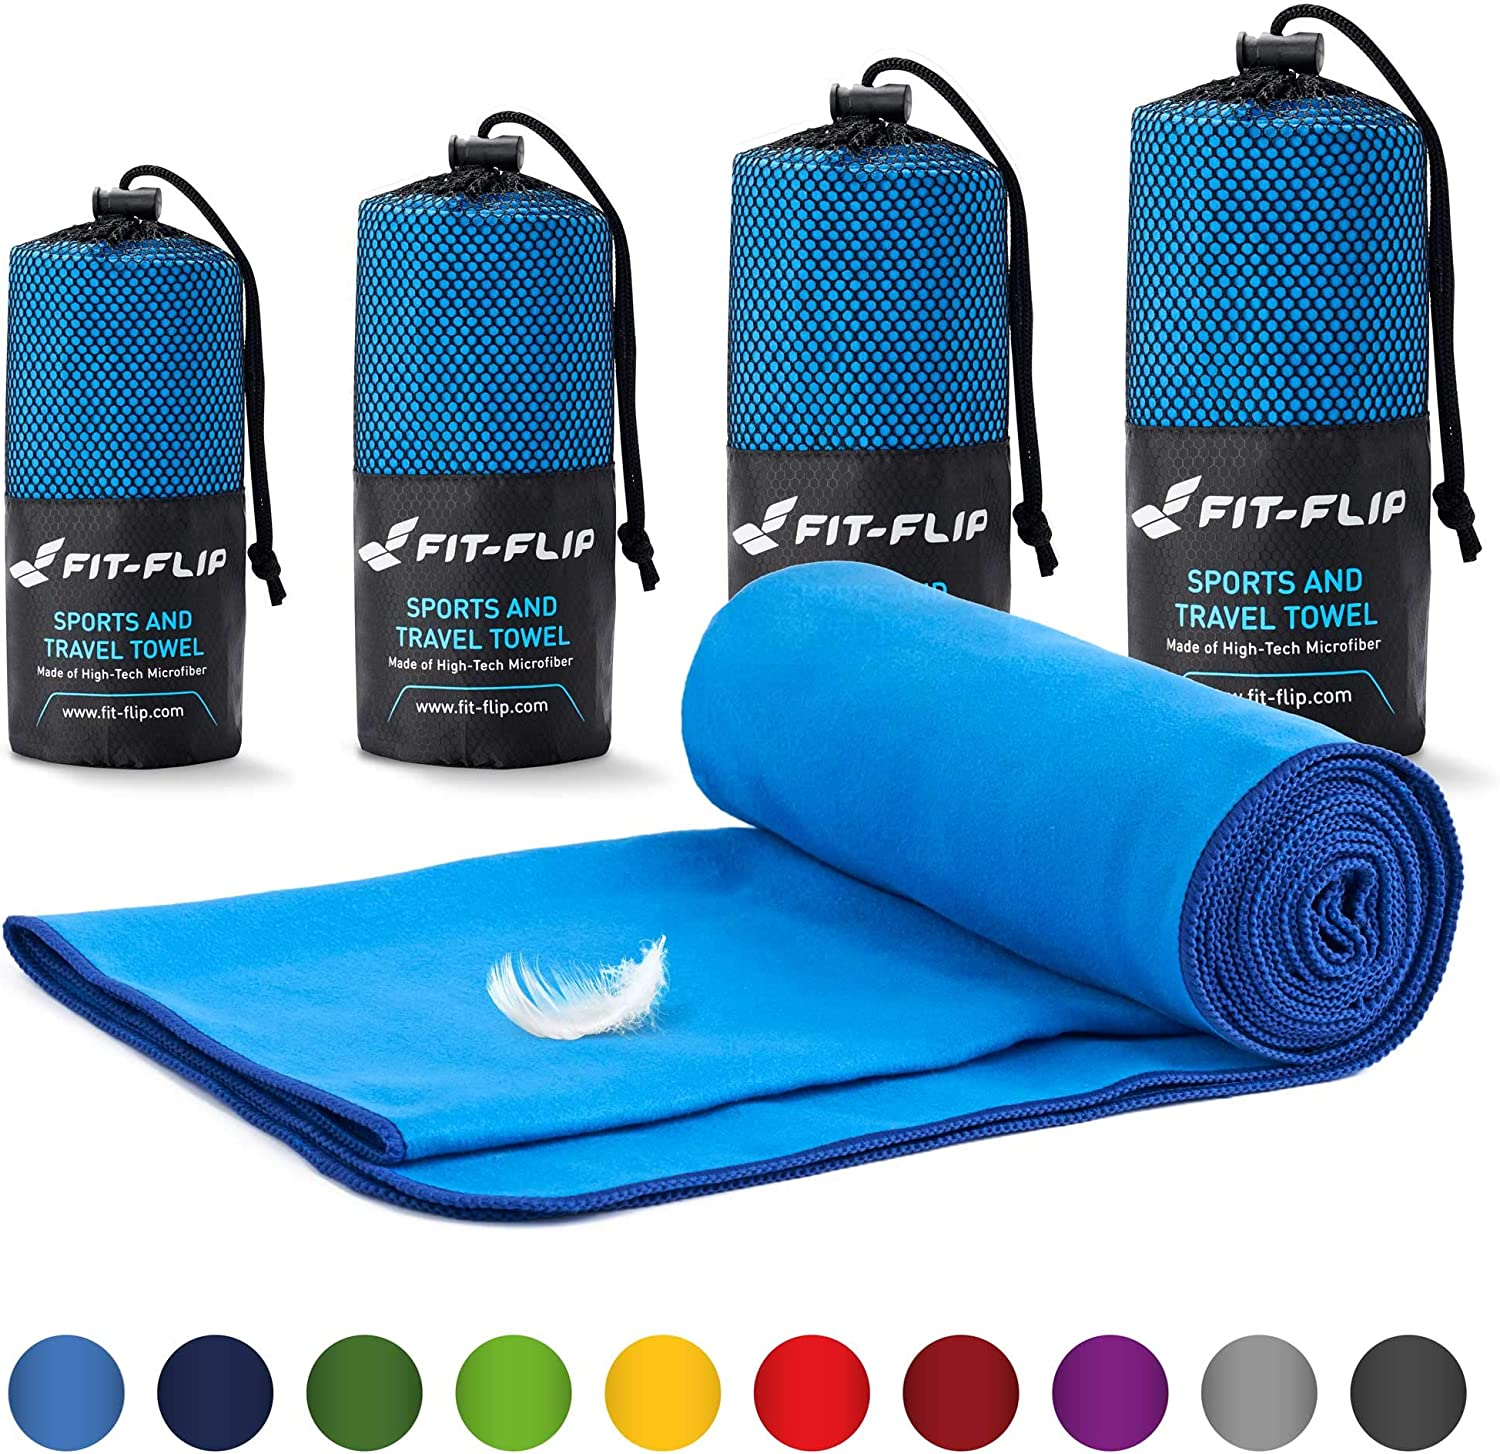 Fit-Flip Microfibre towel set 6 sizes camping towel and swim towel 15 colours ultra lightweight microfiber towels compact /& fast-drying the perfect sports towel